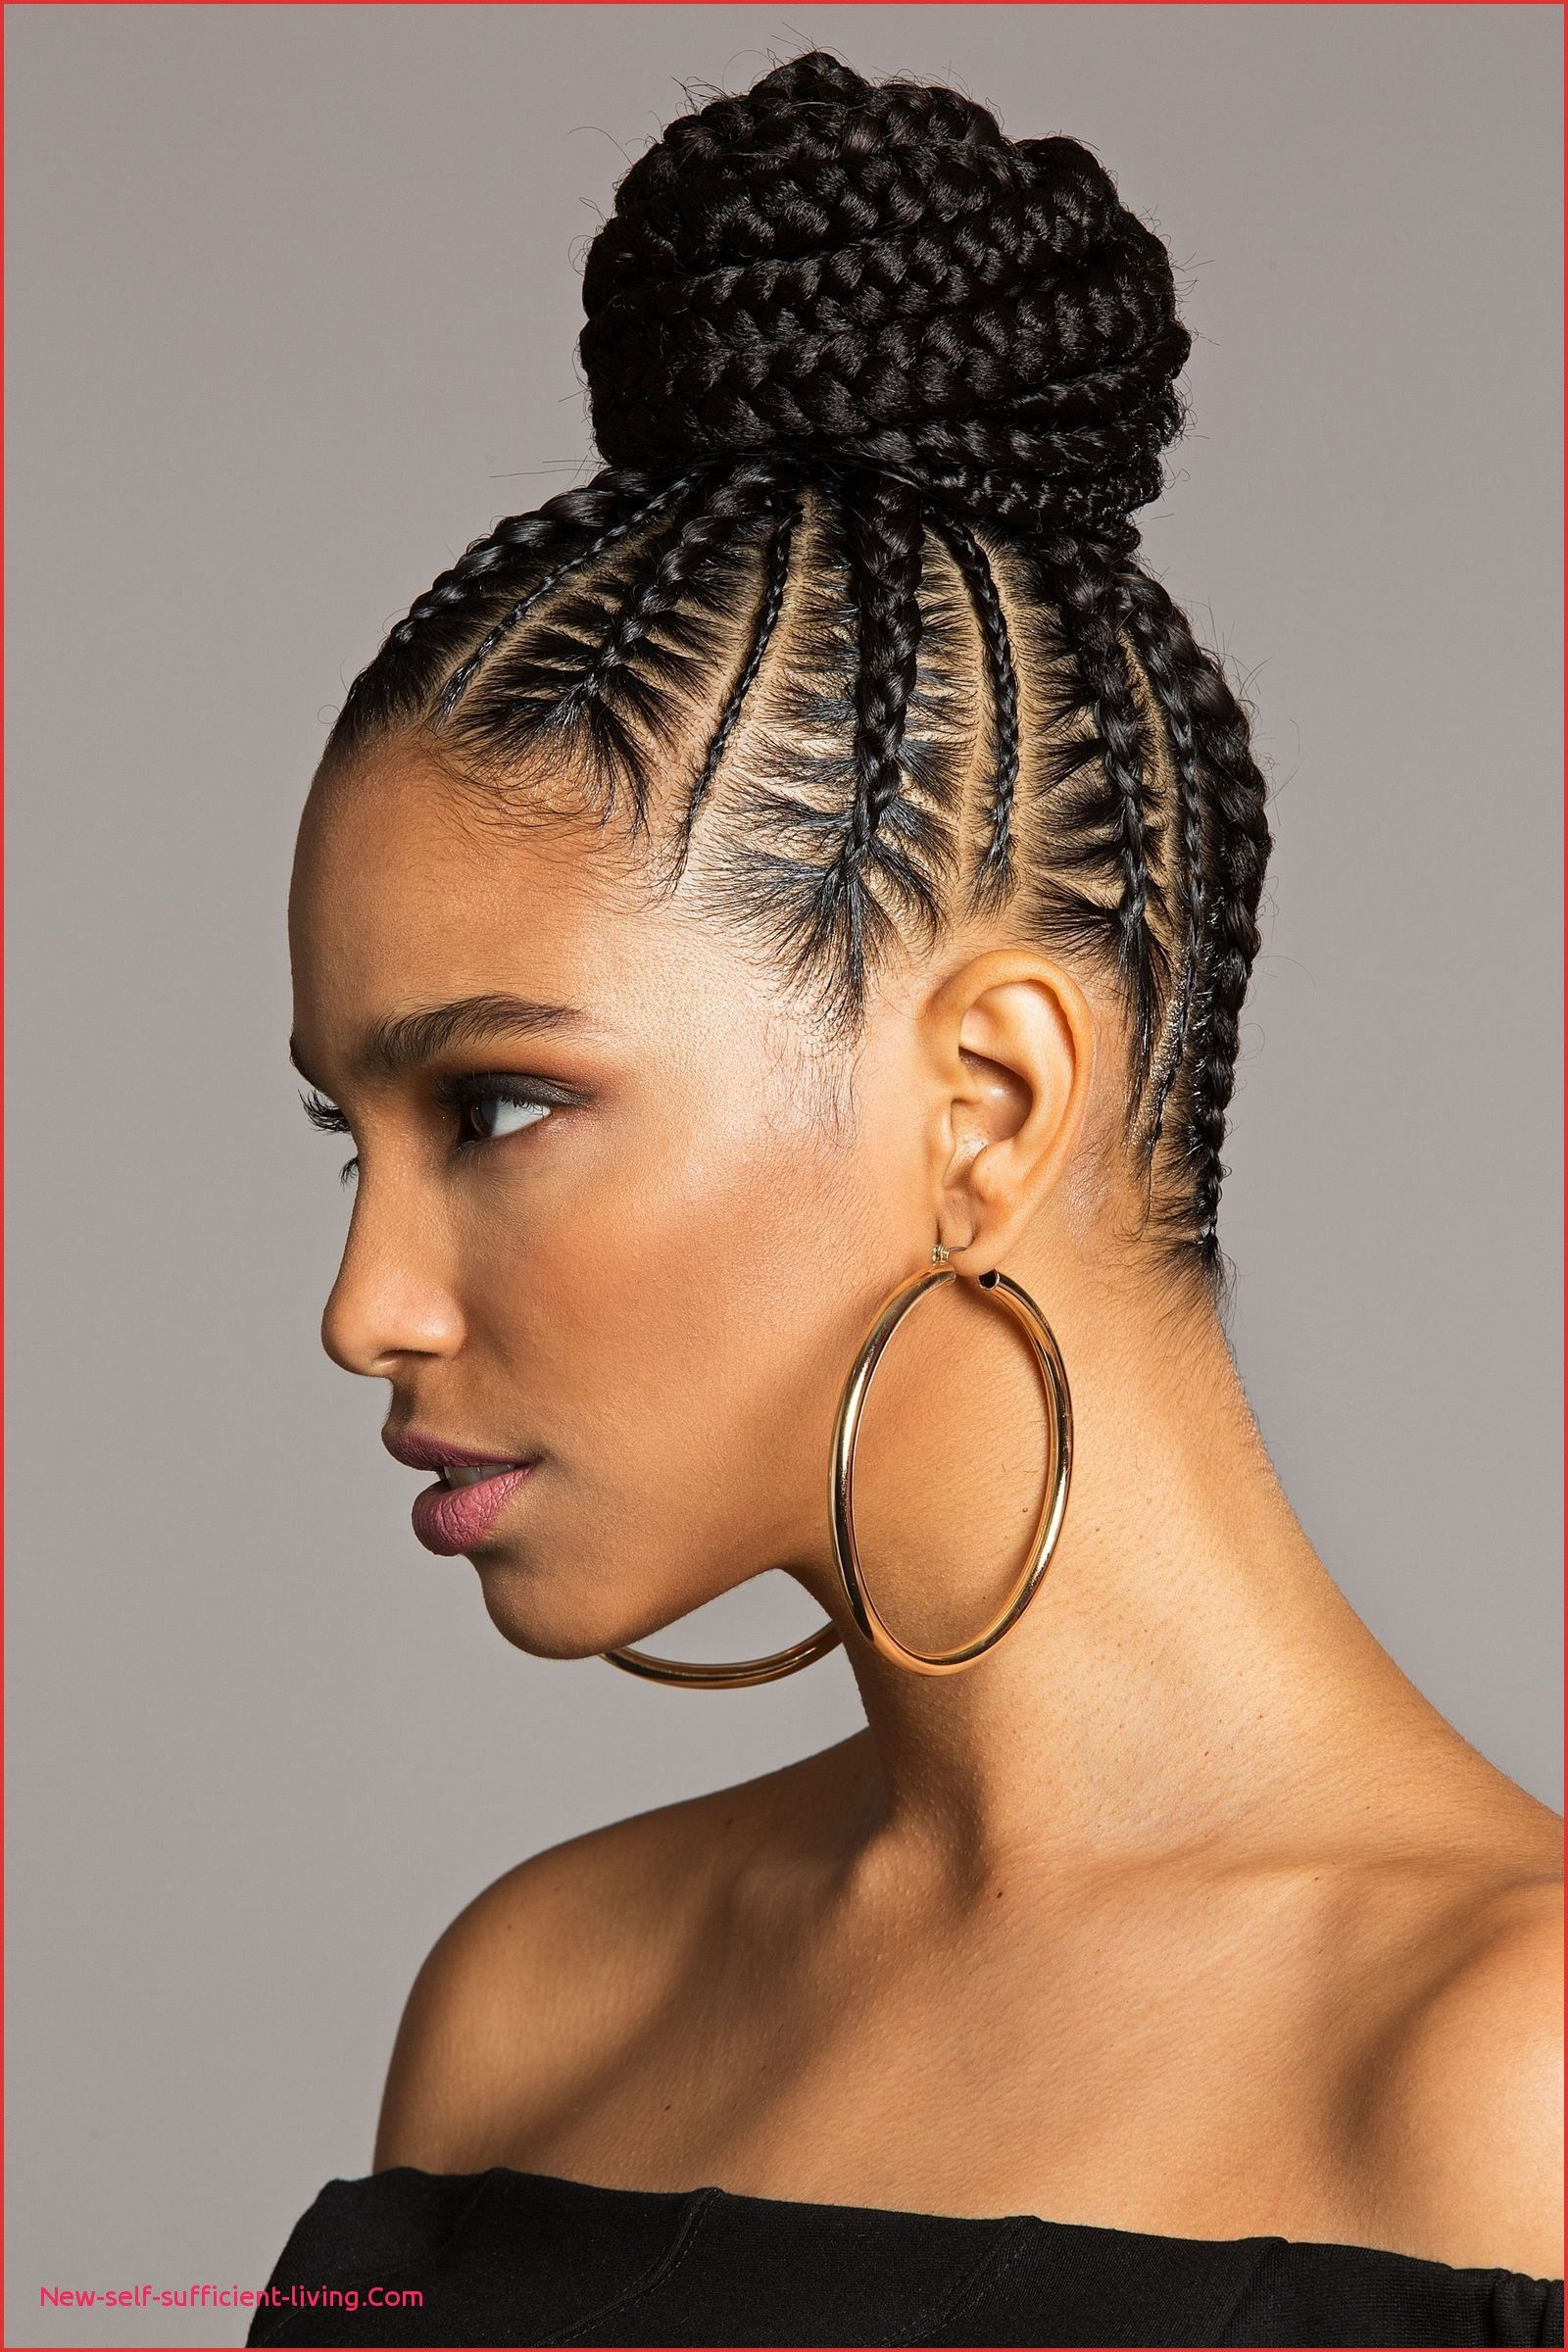 Hairstyles Braids Updo Chrome Fashion Cornrow Updo Bun Hairstyles Amusing Braided Bun Cornrow Braid Styles Hair Styles Natural Hair Styles For Black Women